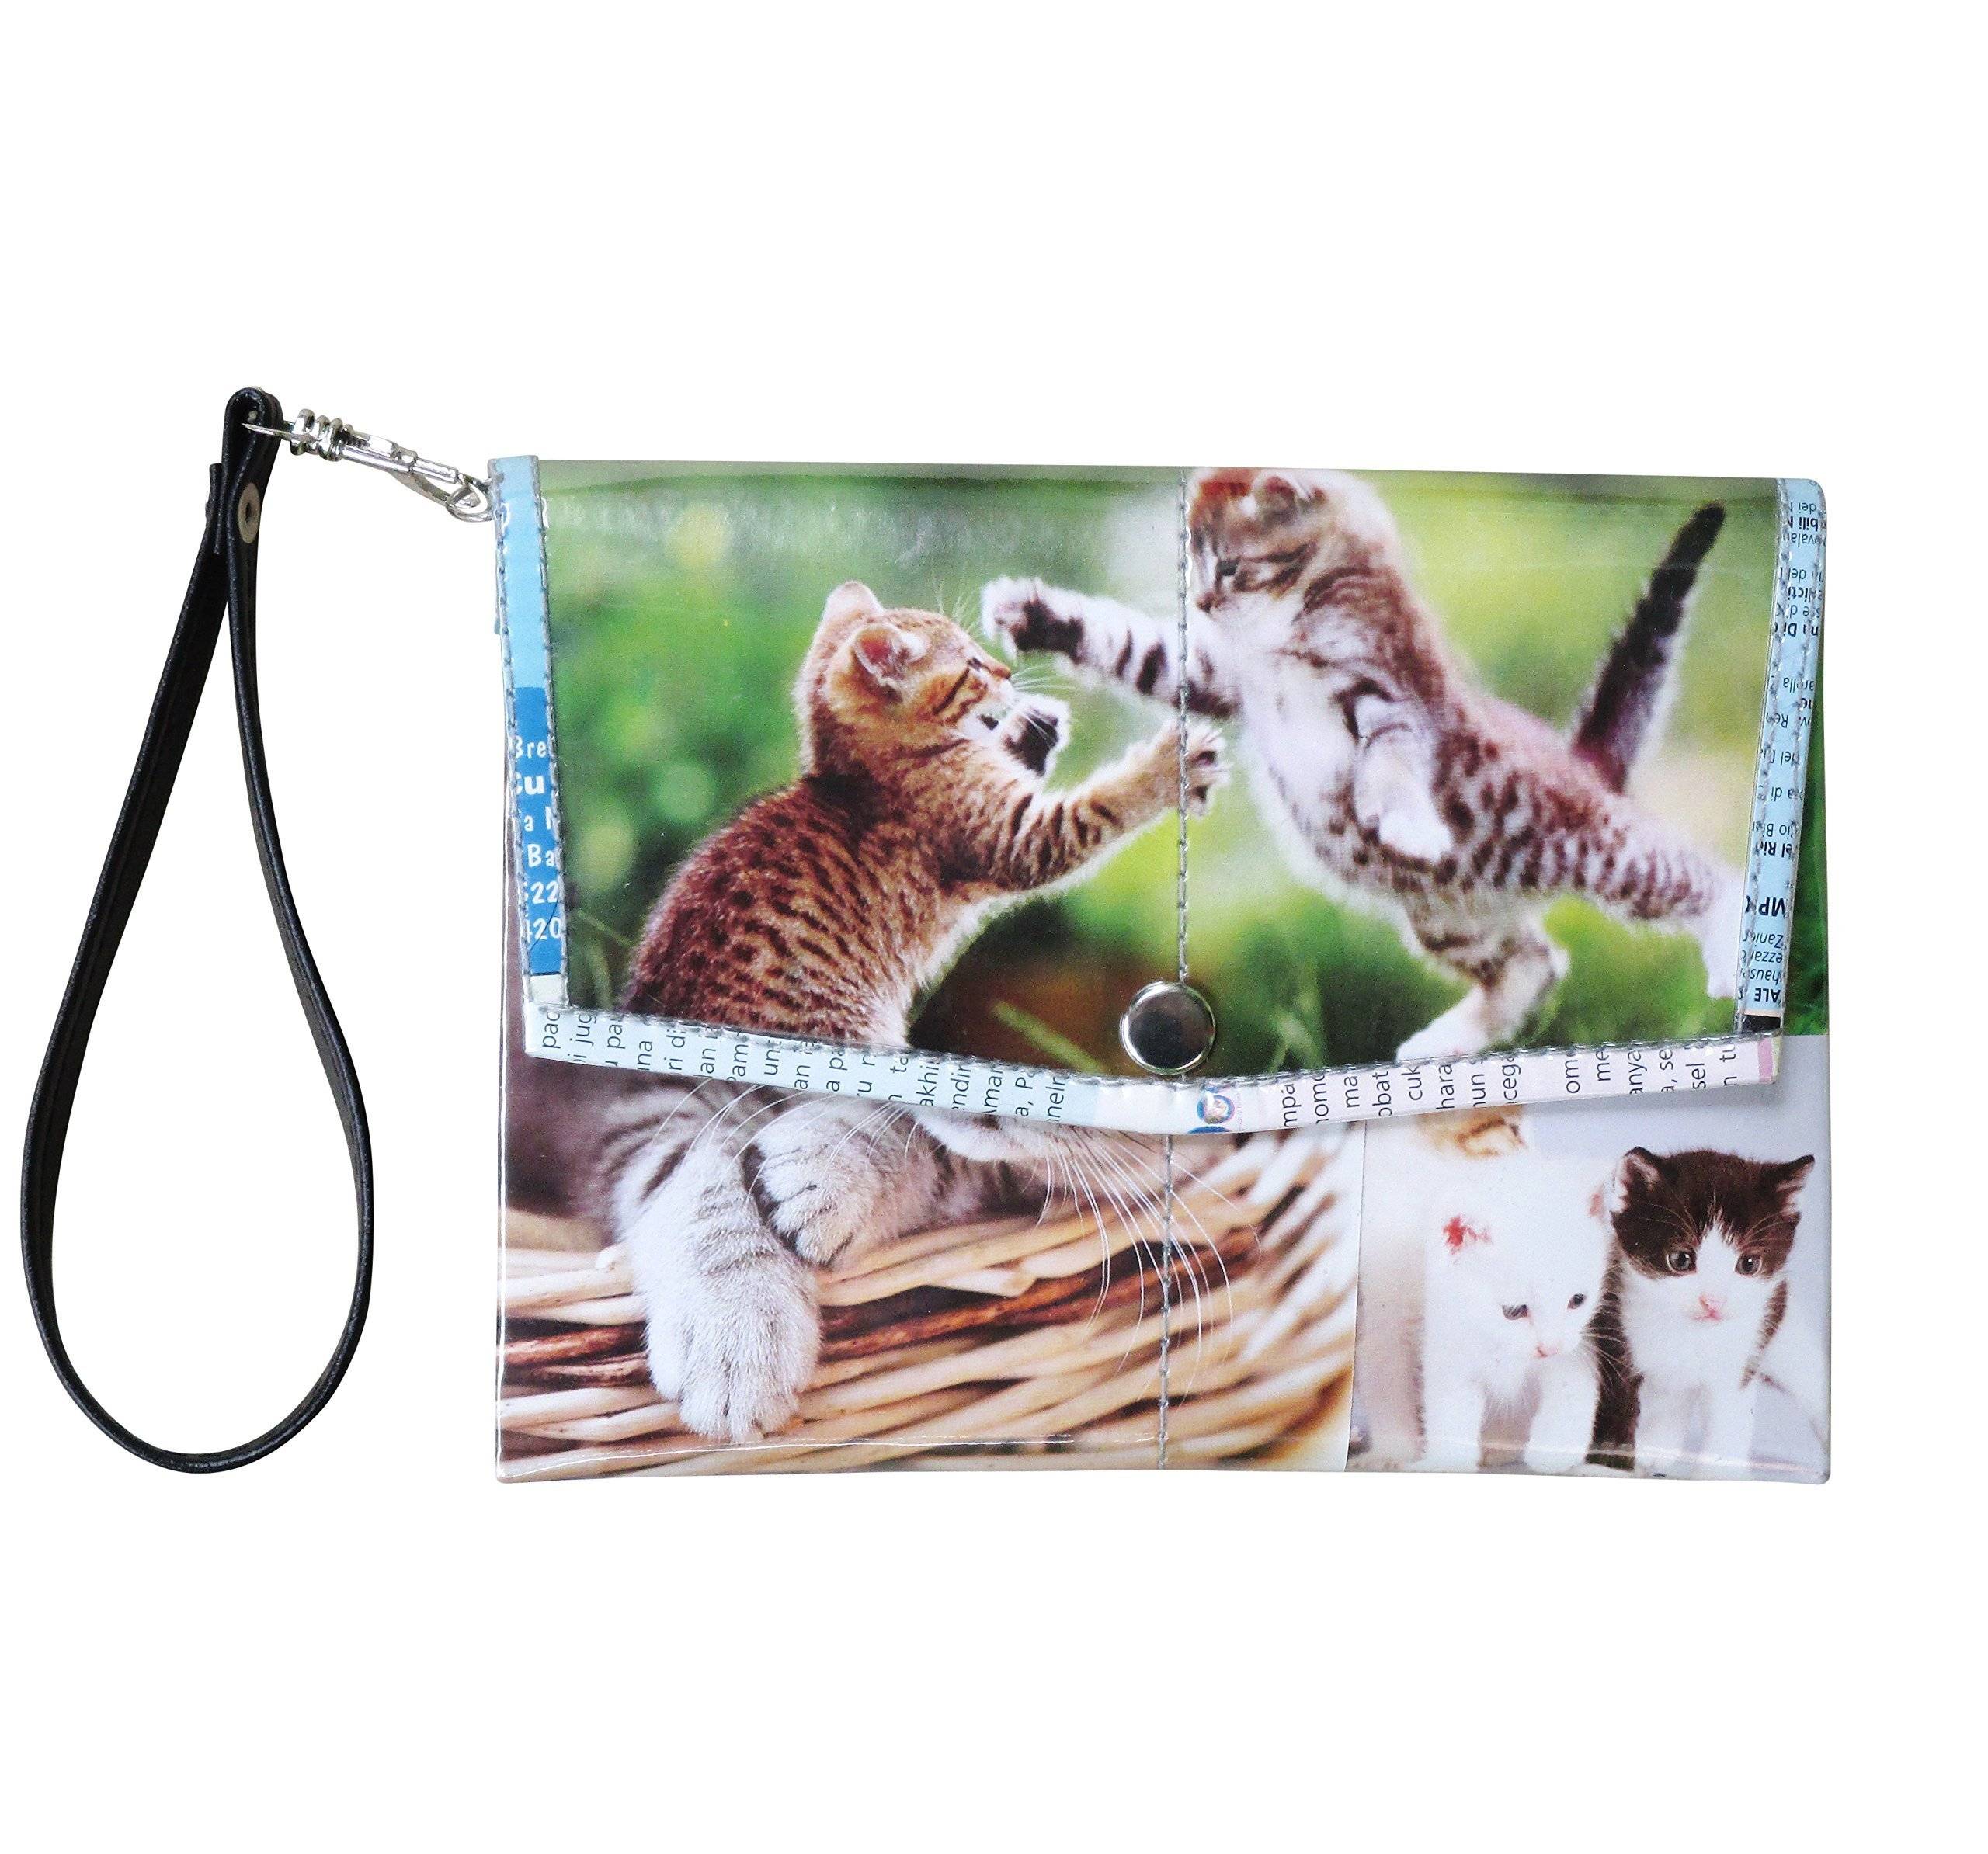 Small snap wristlet for cat lovers - FREE SHIPPING - upcycled eco friendly vegan recycled reclaimed salvaged handmade unique purse gift purse wallet kitten print kittens printing cats lover meow by Upcycling by Milo